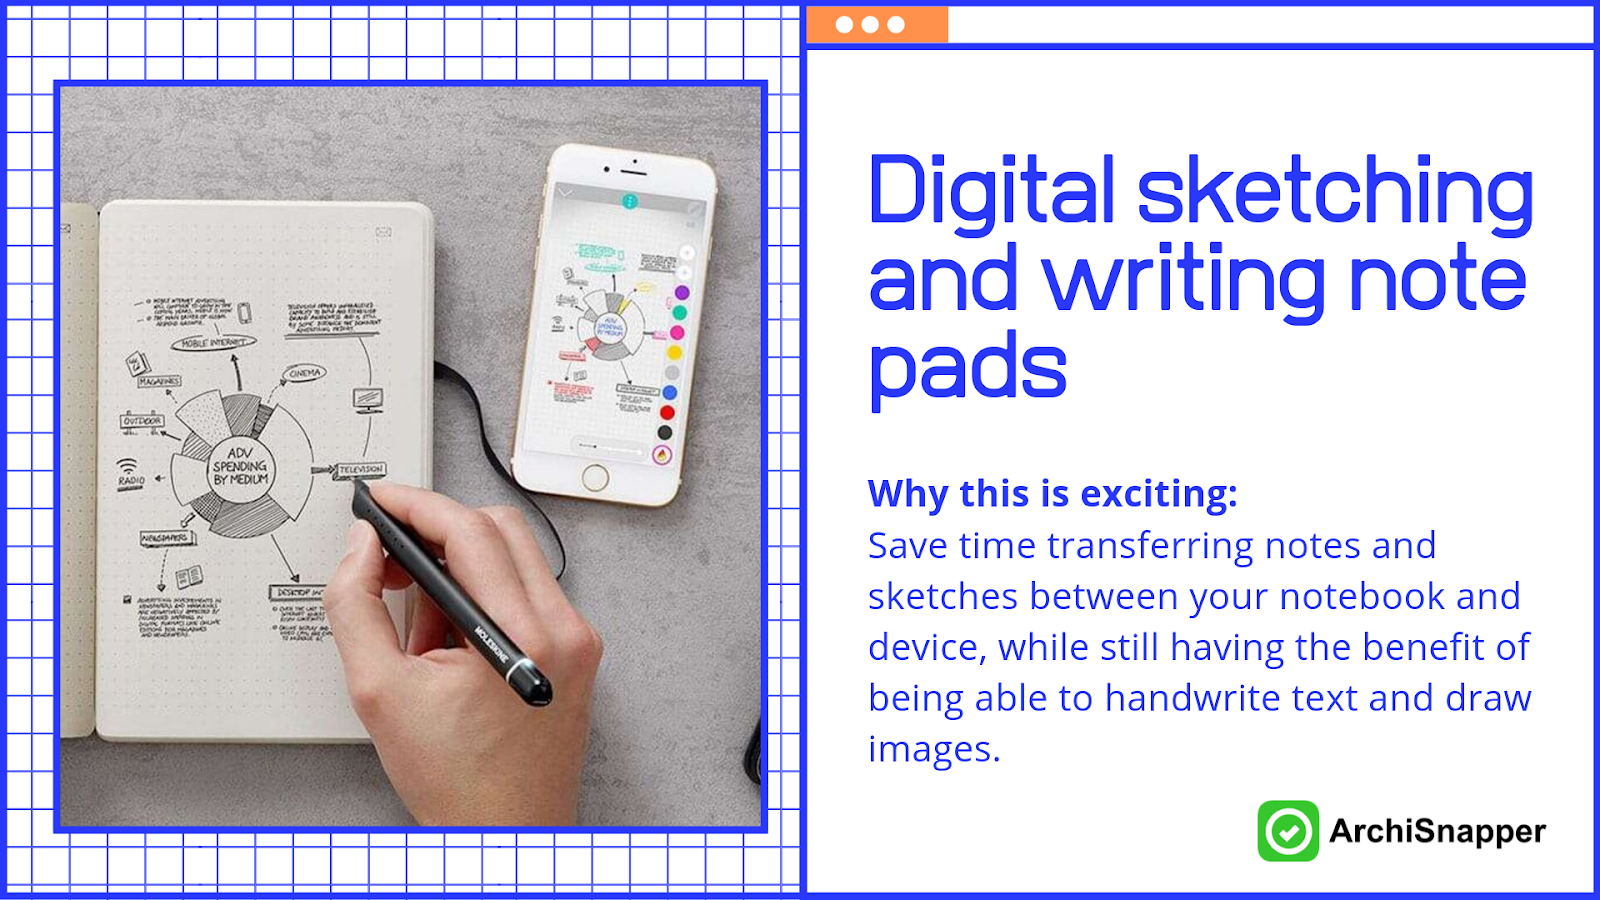 Digital sketching and writing note pads | List of the 15 must-have tech tools and accessories ideal for architects presented by Archisnapper